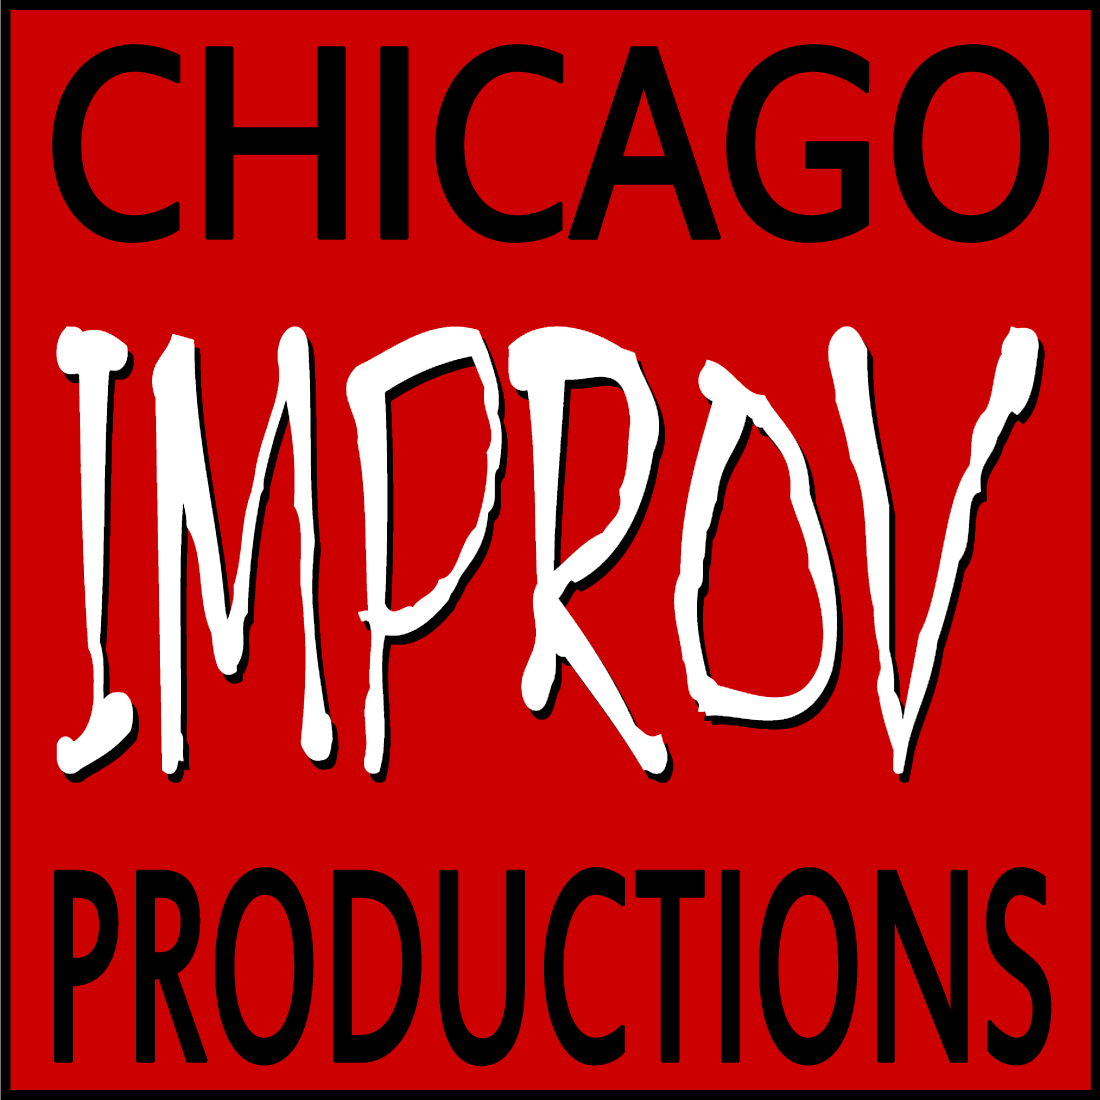 Chicago Improv Productions